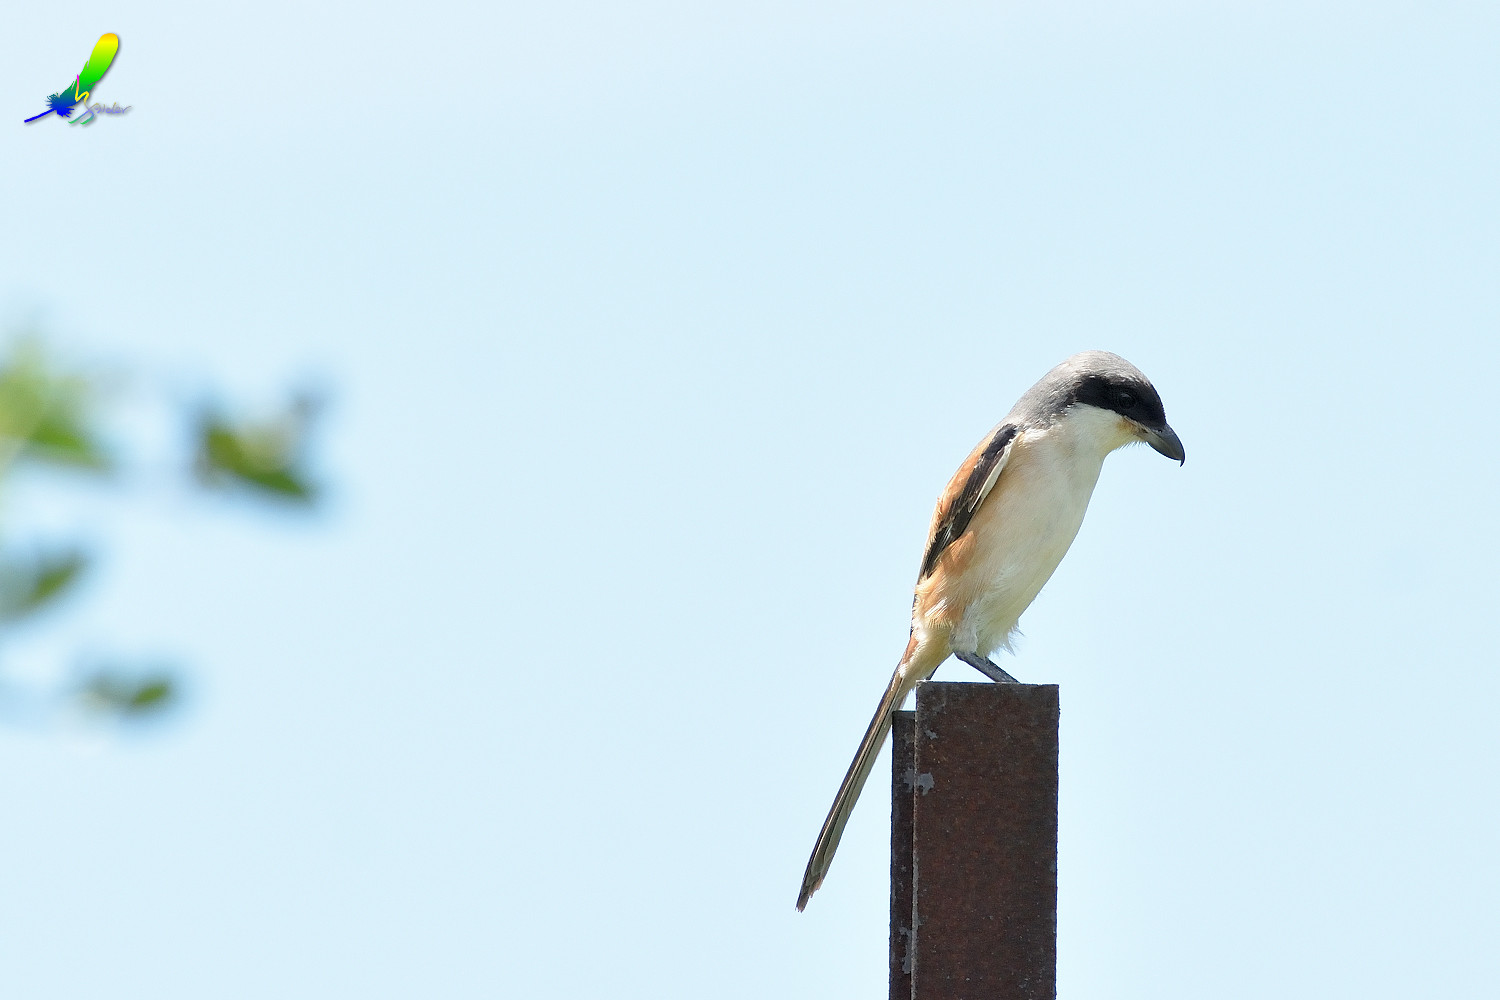 Long-tailed_Shrike_8480